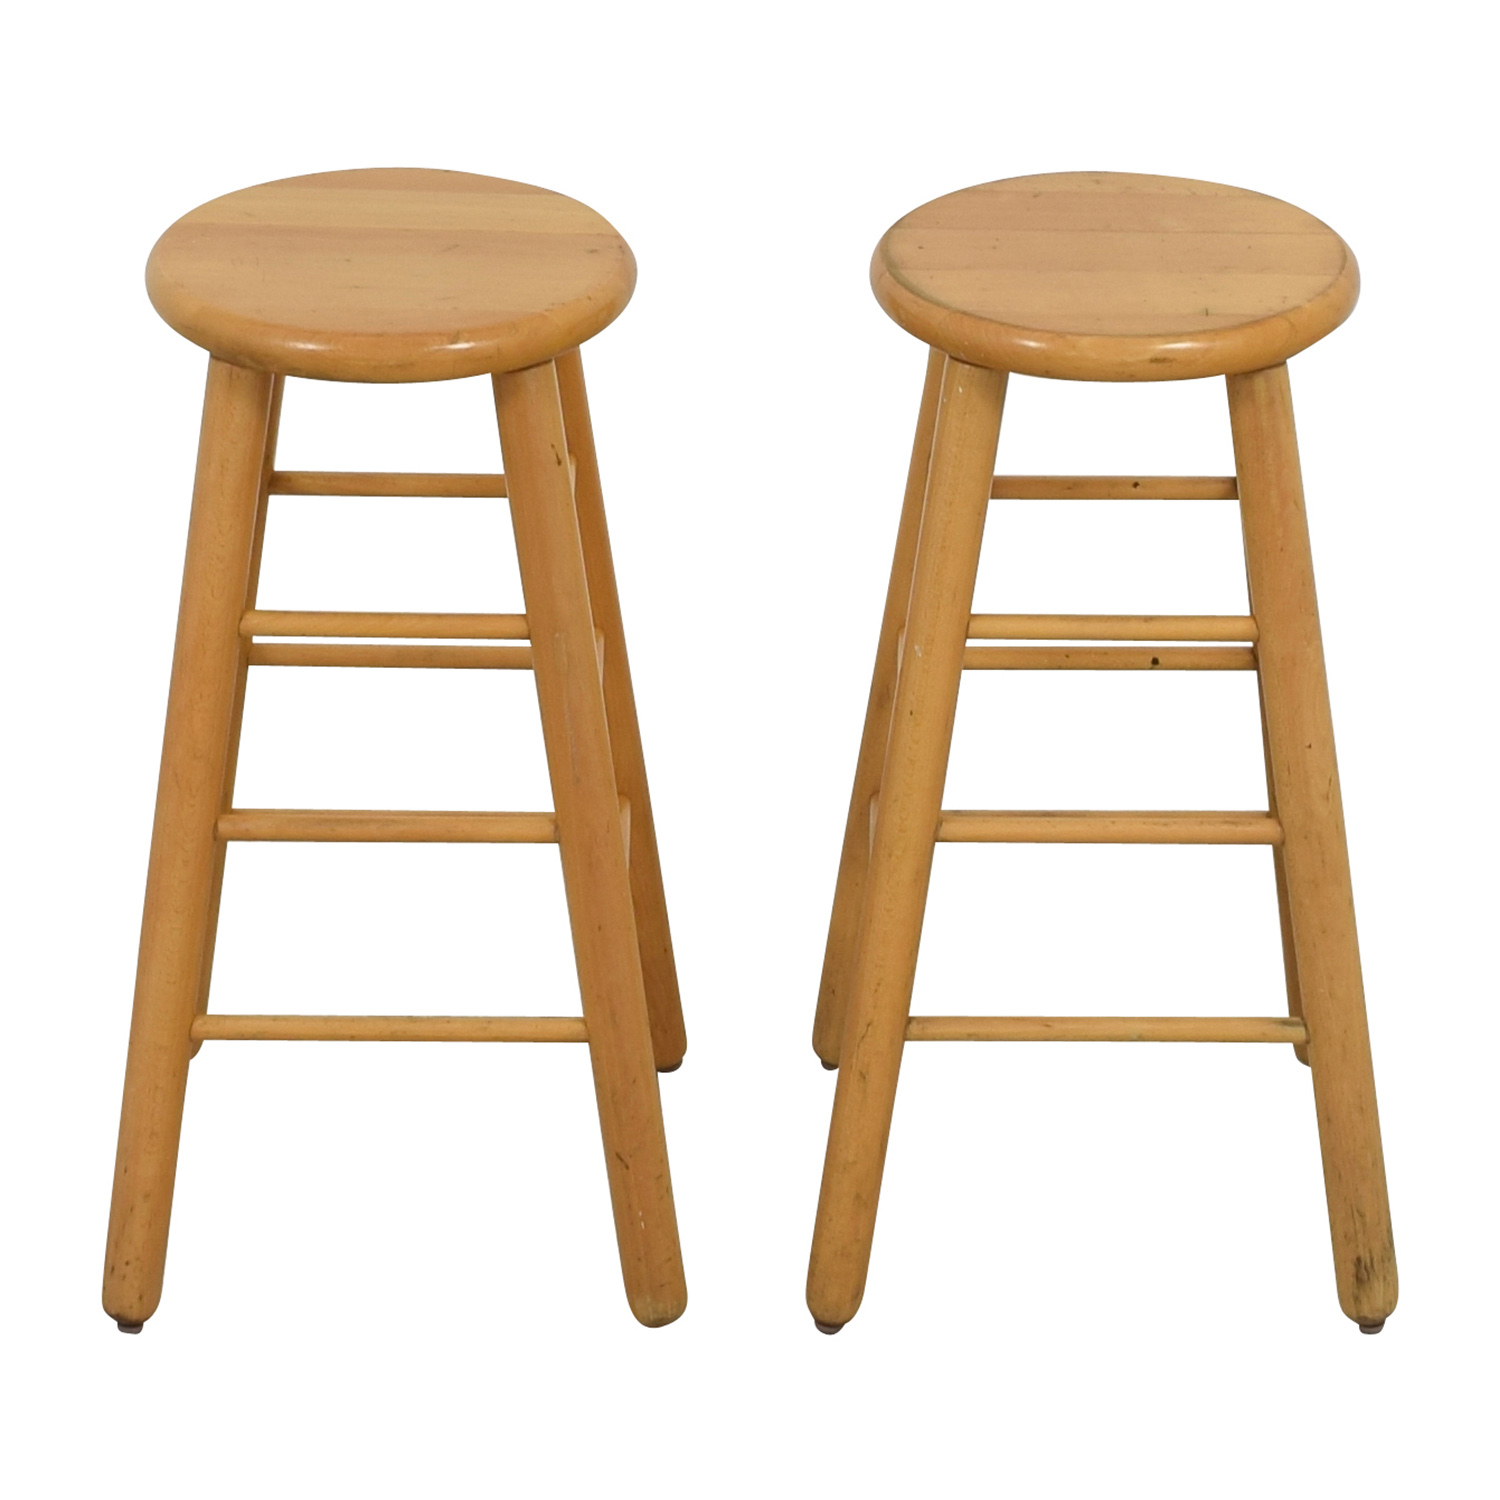 75 OFF Wood Bar Stools Chairs